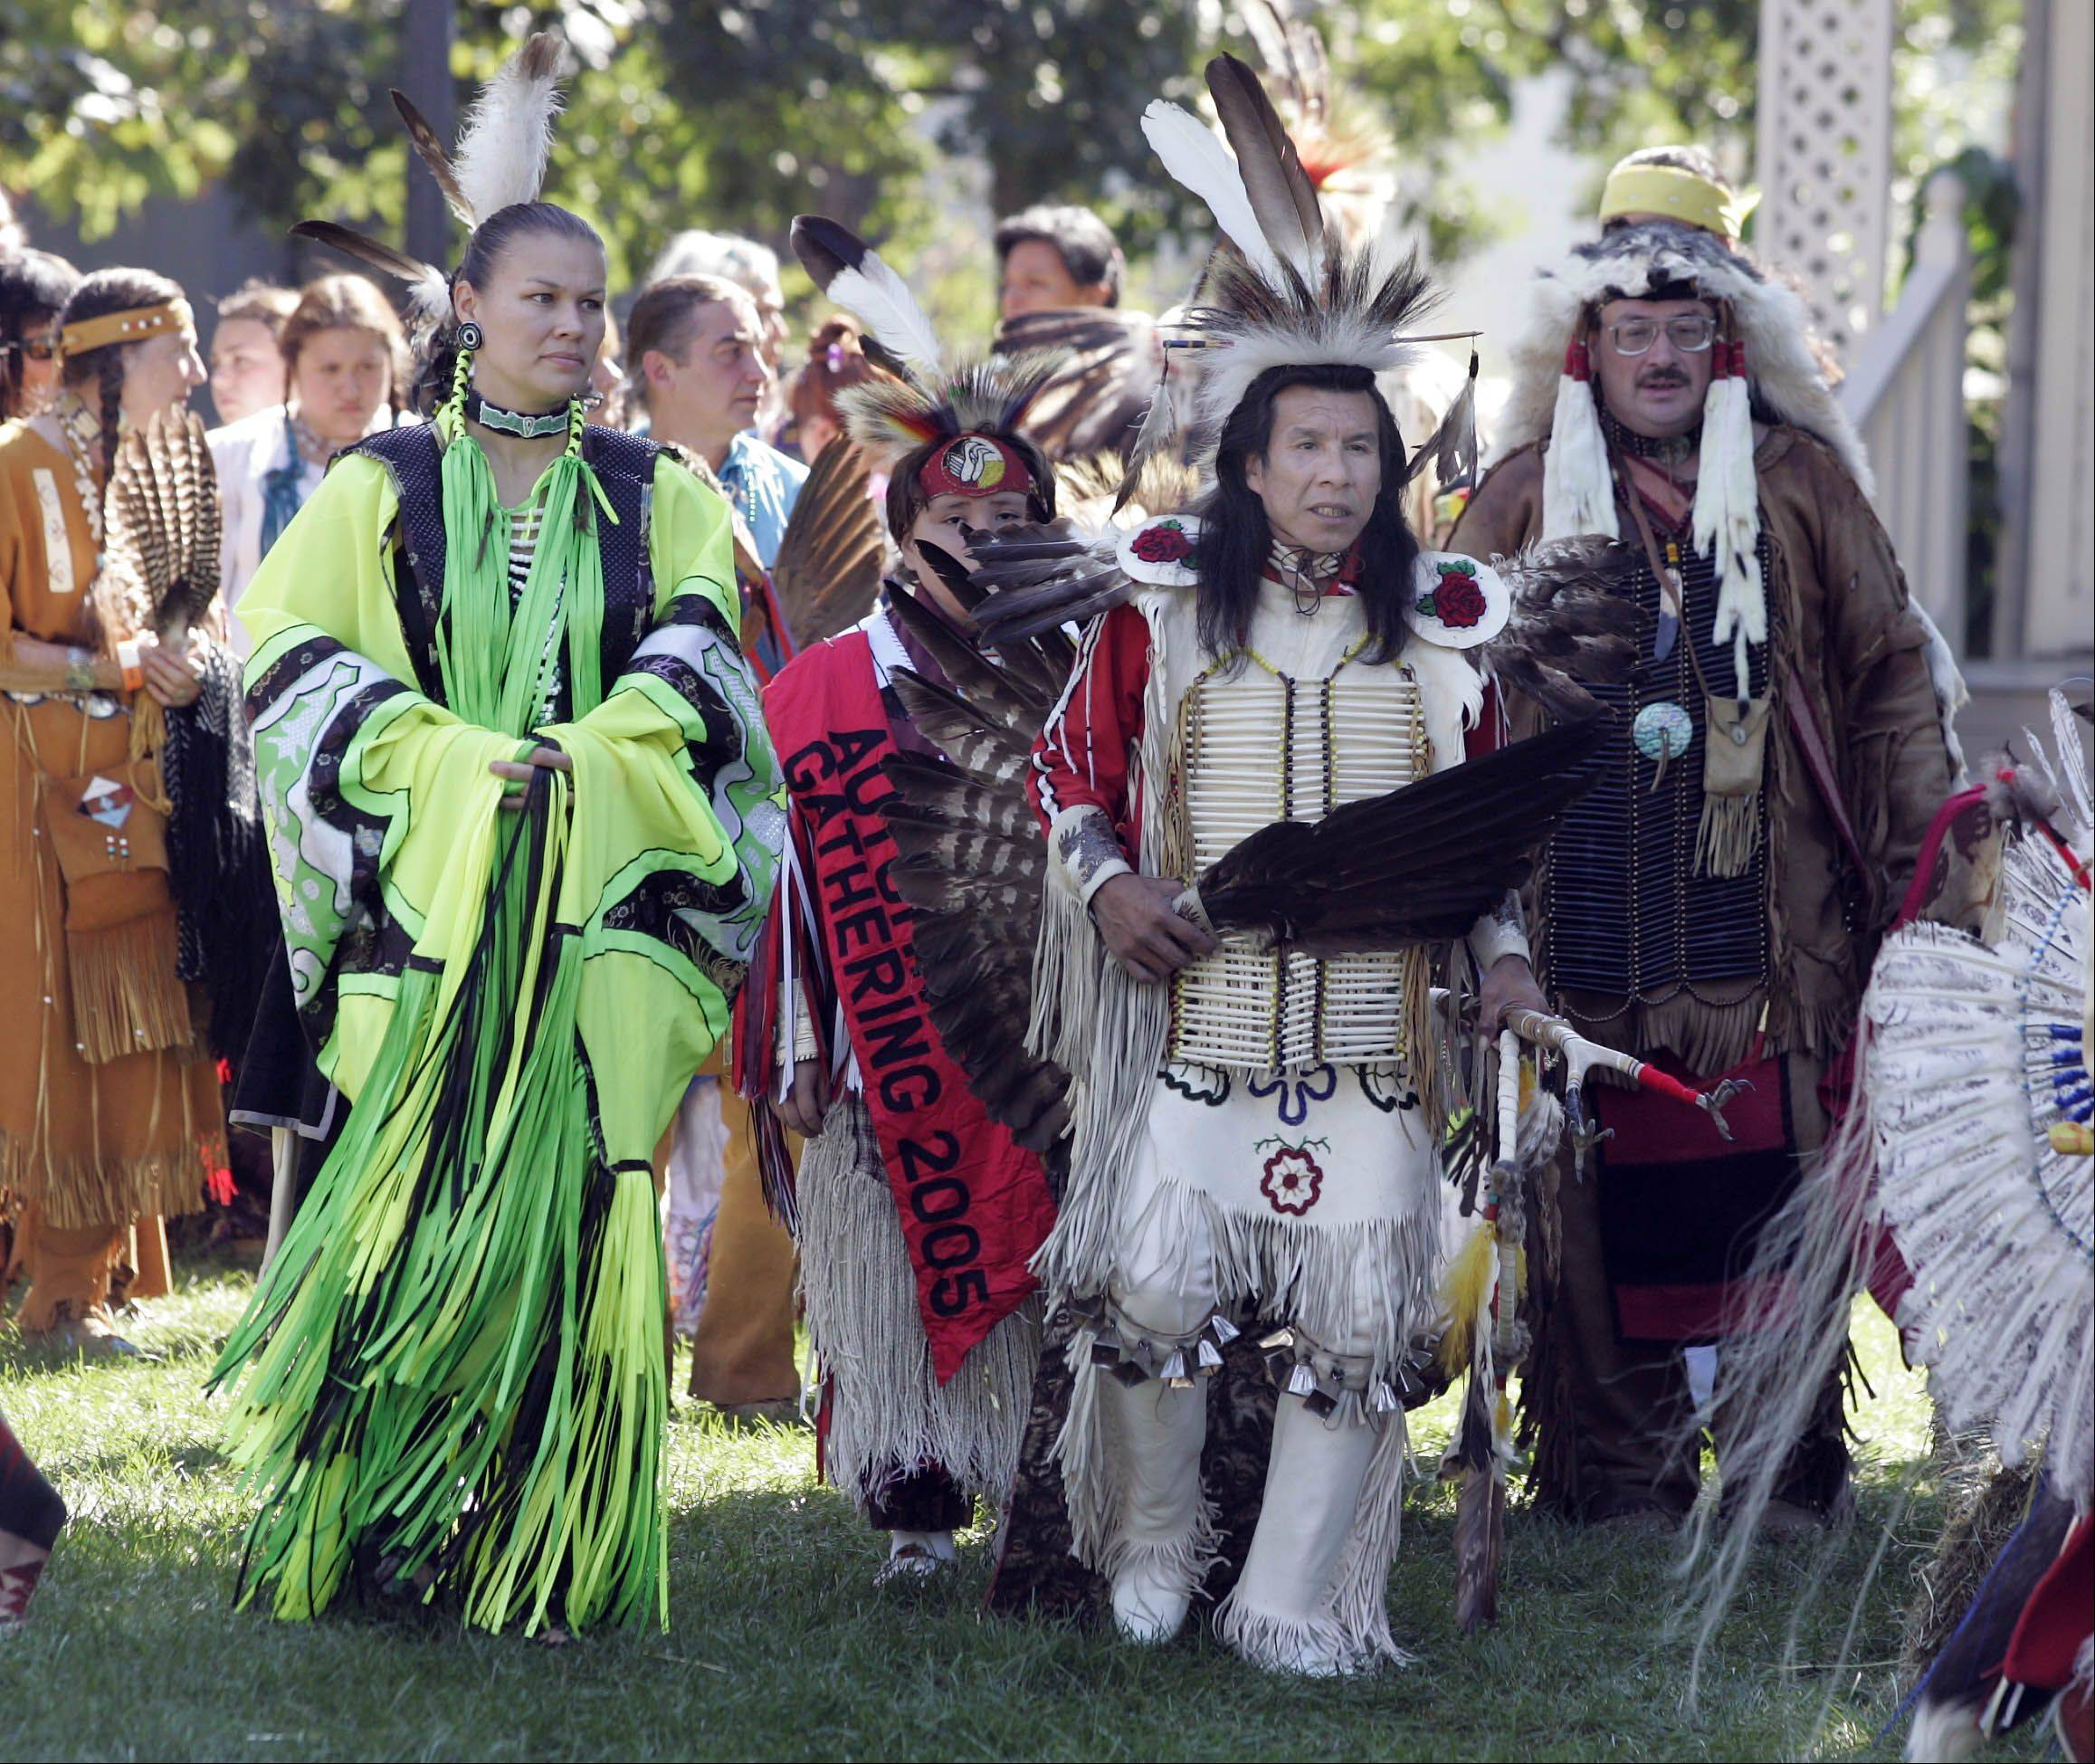 About 100 dancers in brightly colored regalia will enter the Naper Settlement grounds at 1 and 7 p.m. Saturday and 1 p.m. Sunday during the 19th annual Midwest SOARRING Foundation Harvest Pow Wow.